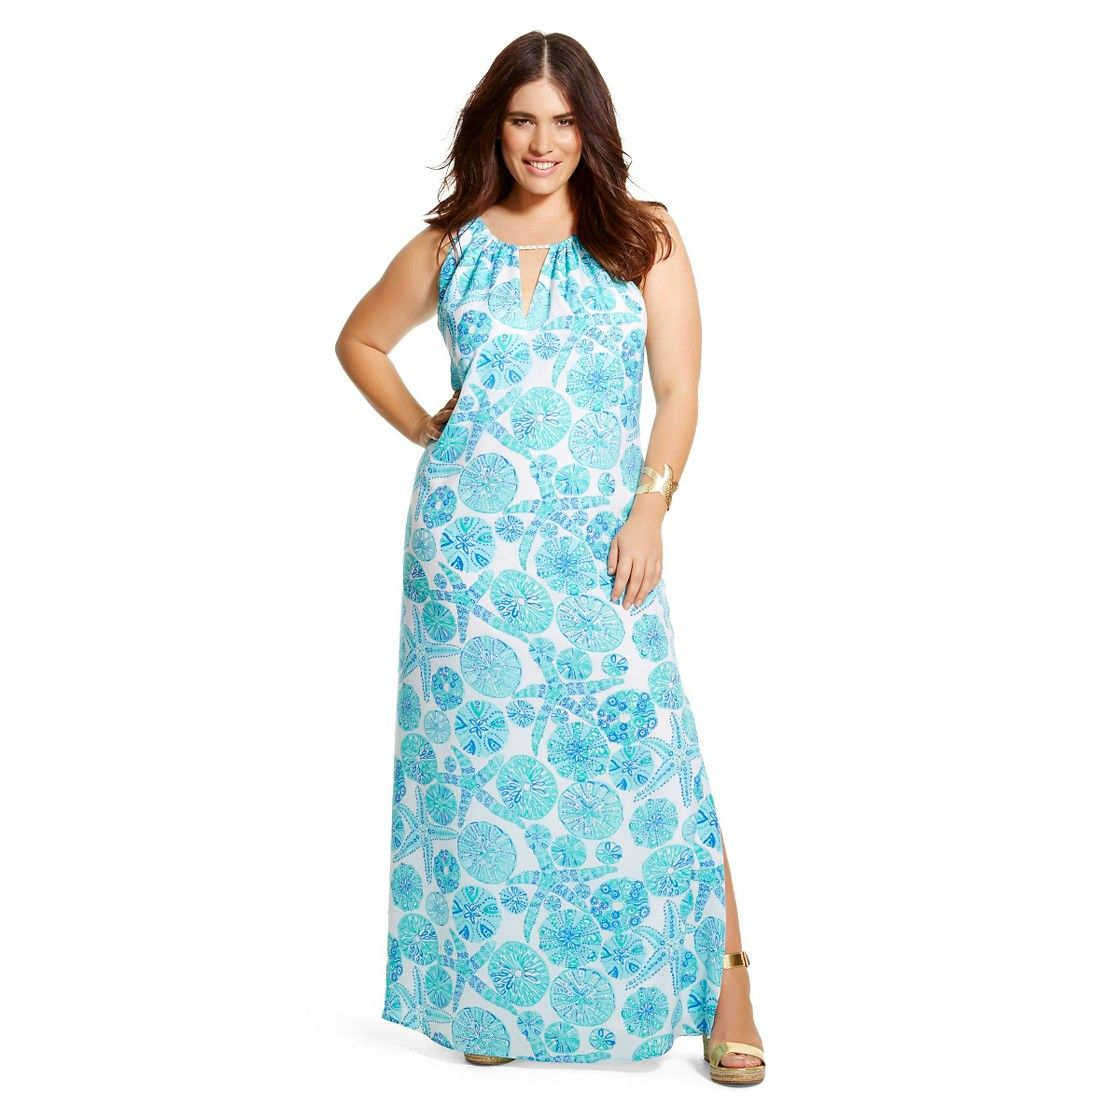 Lilly Pulitzer For Target Womens Plus Size Satin Halter Maxi Dress